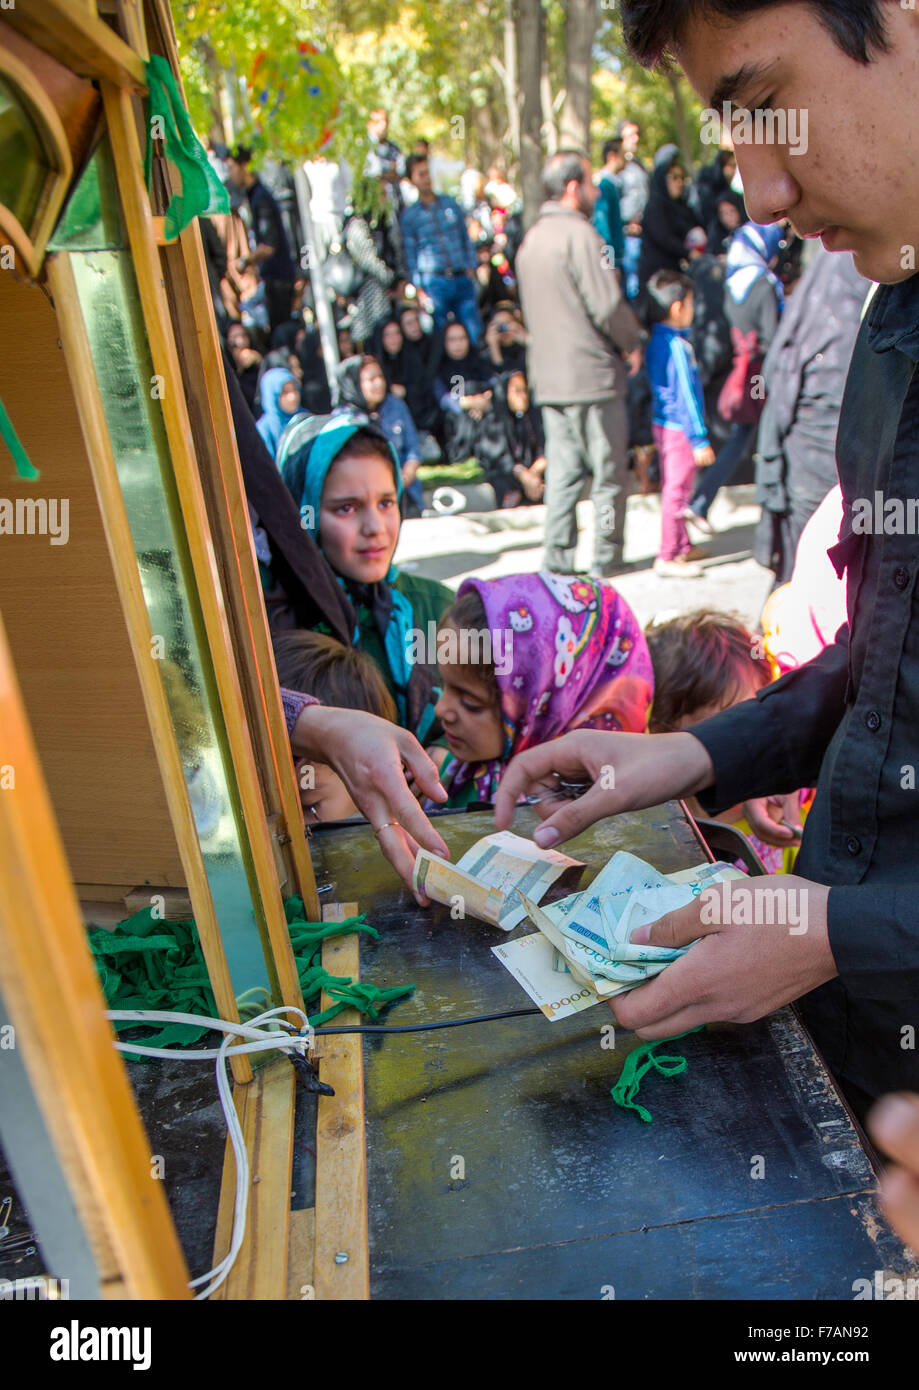 Iranian Shiite People Buying Green Ribbons To Make Wishes On Ashura, The Day Of The Death Of Imam Hussein, Kurdistan - Stock Image